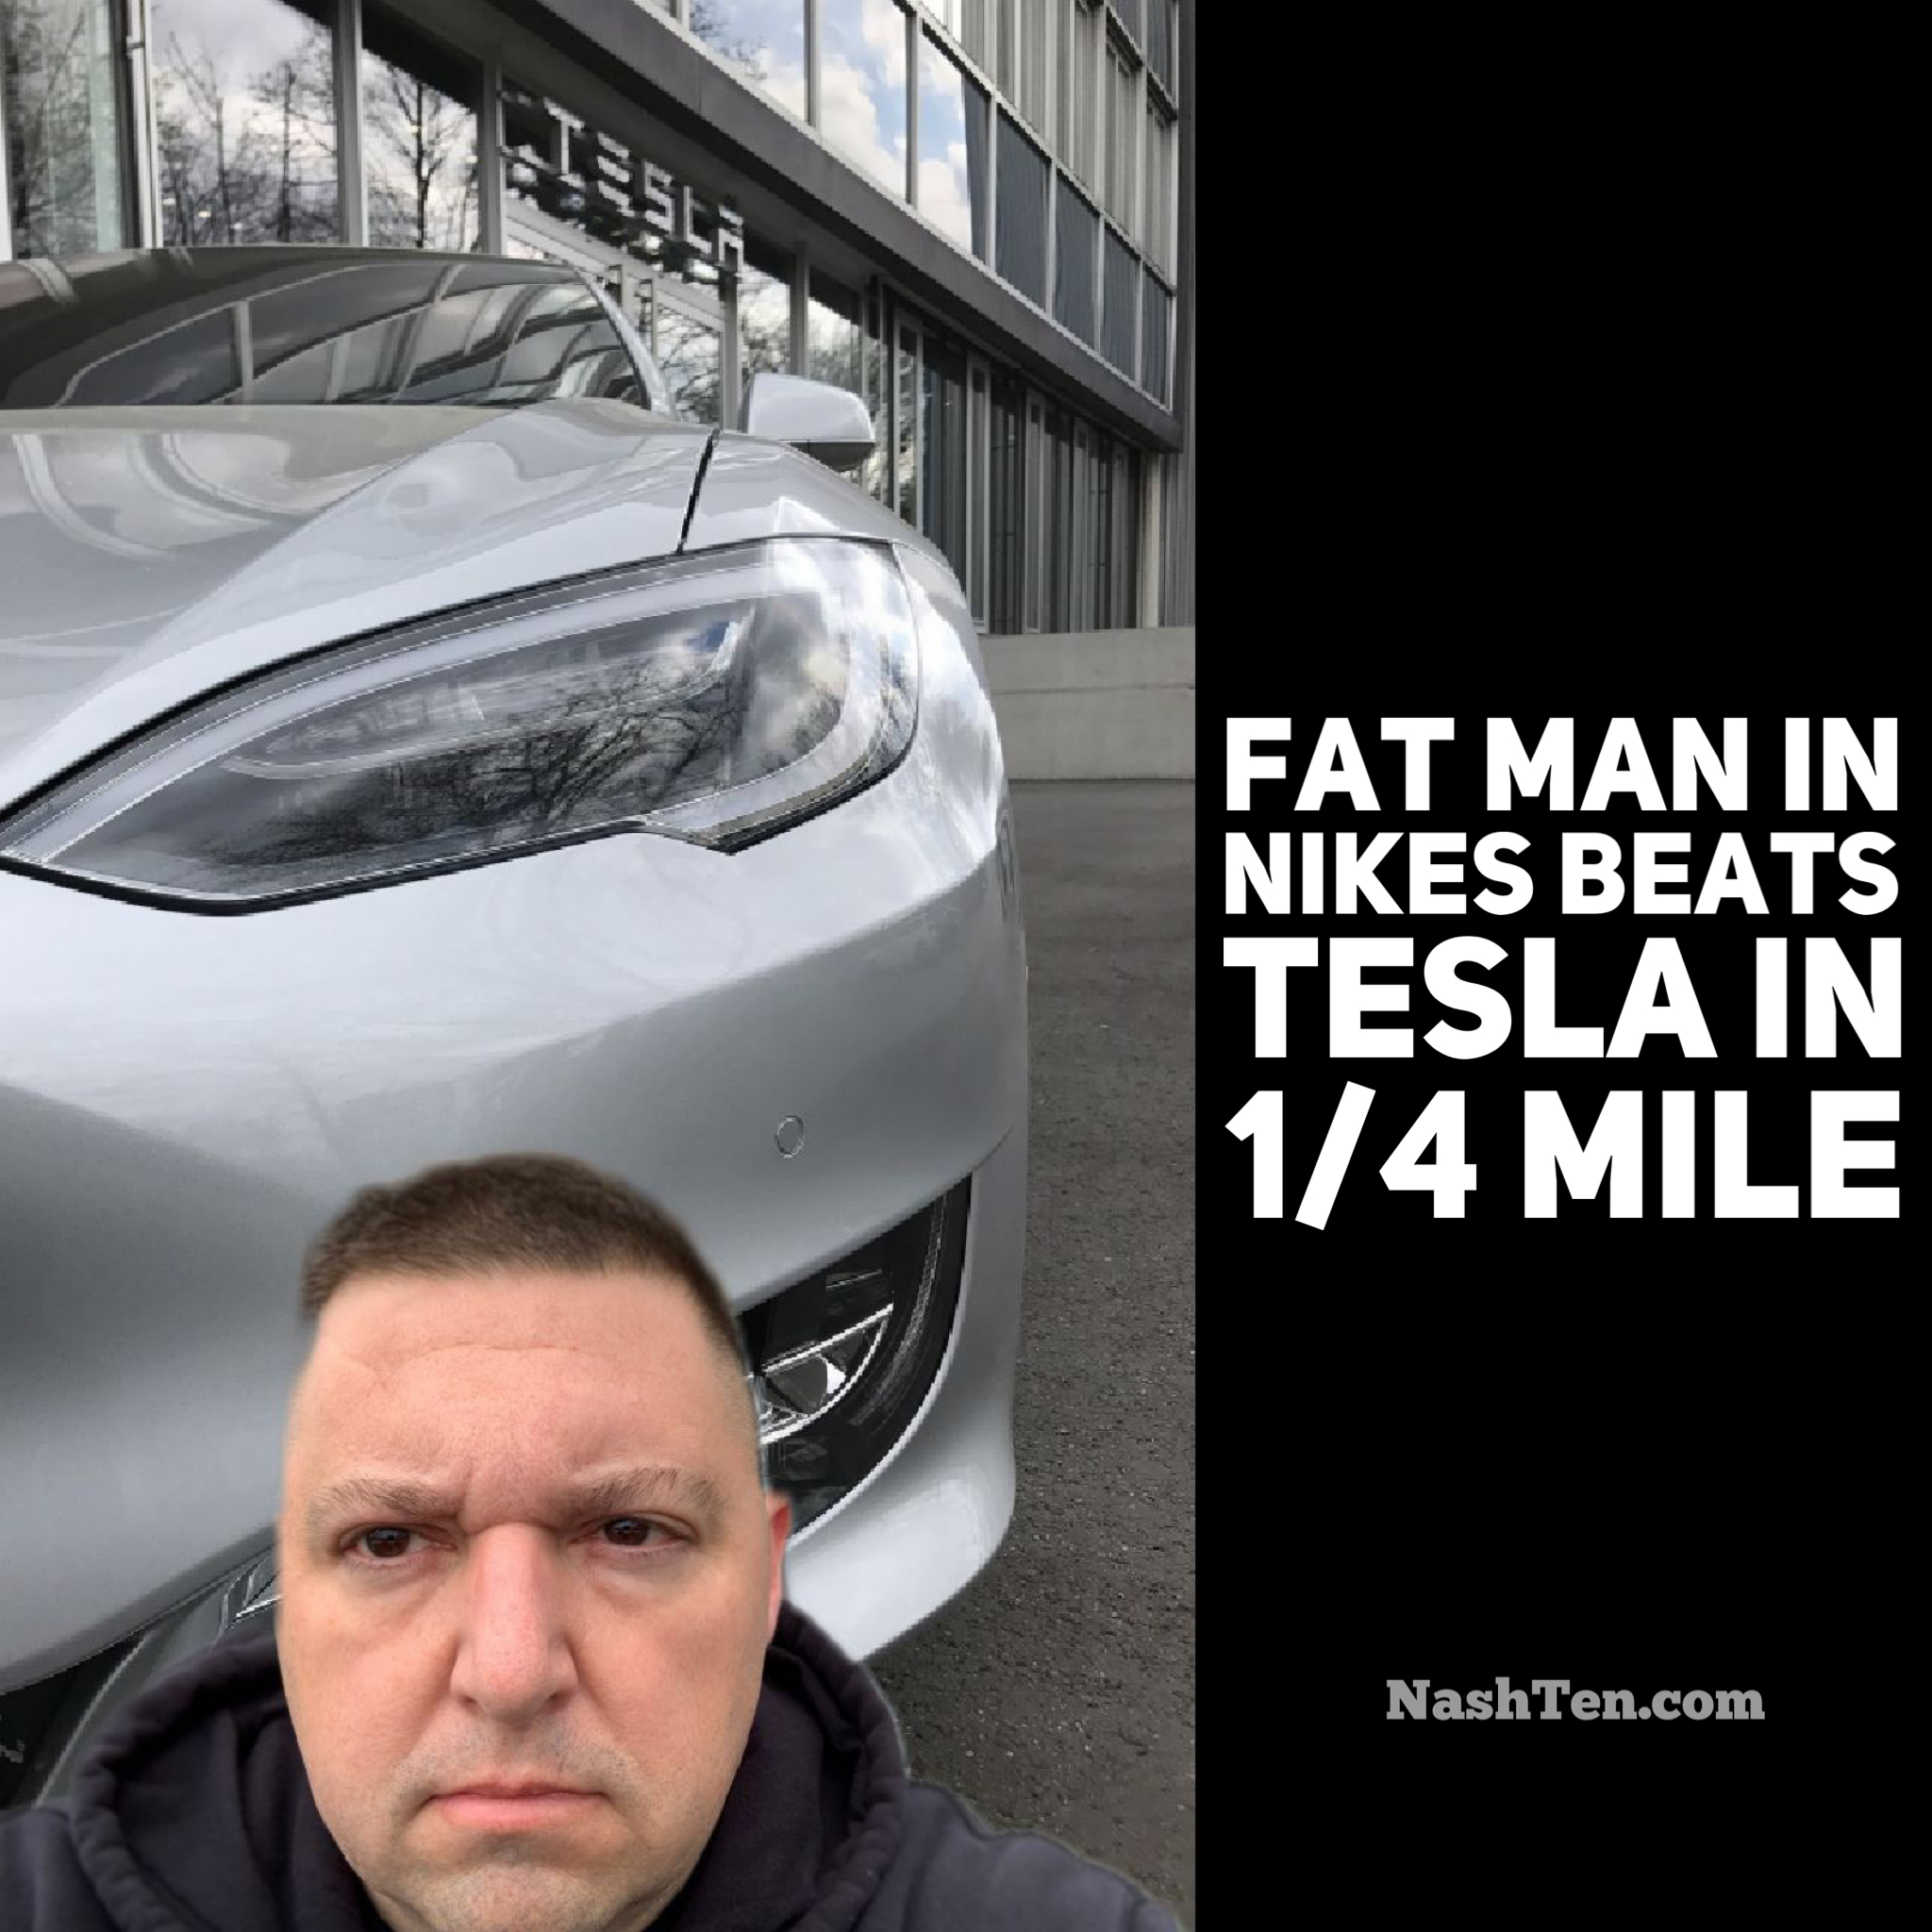 Fat man in Nikes beats Tesla in 1/4 mile in Nashville